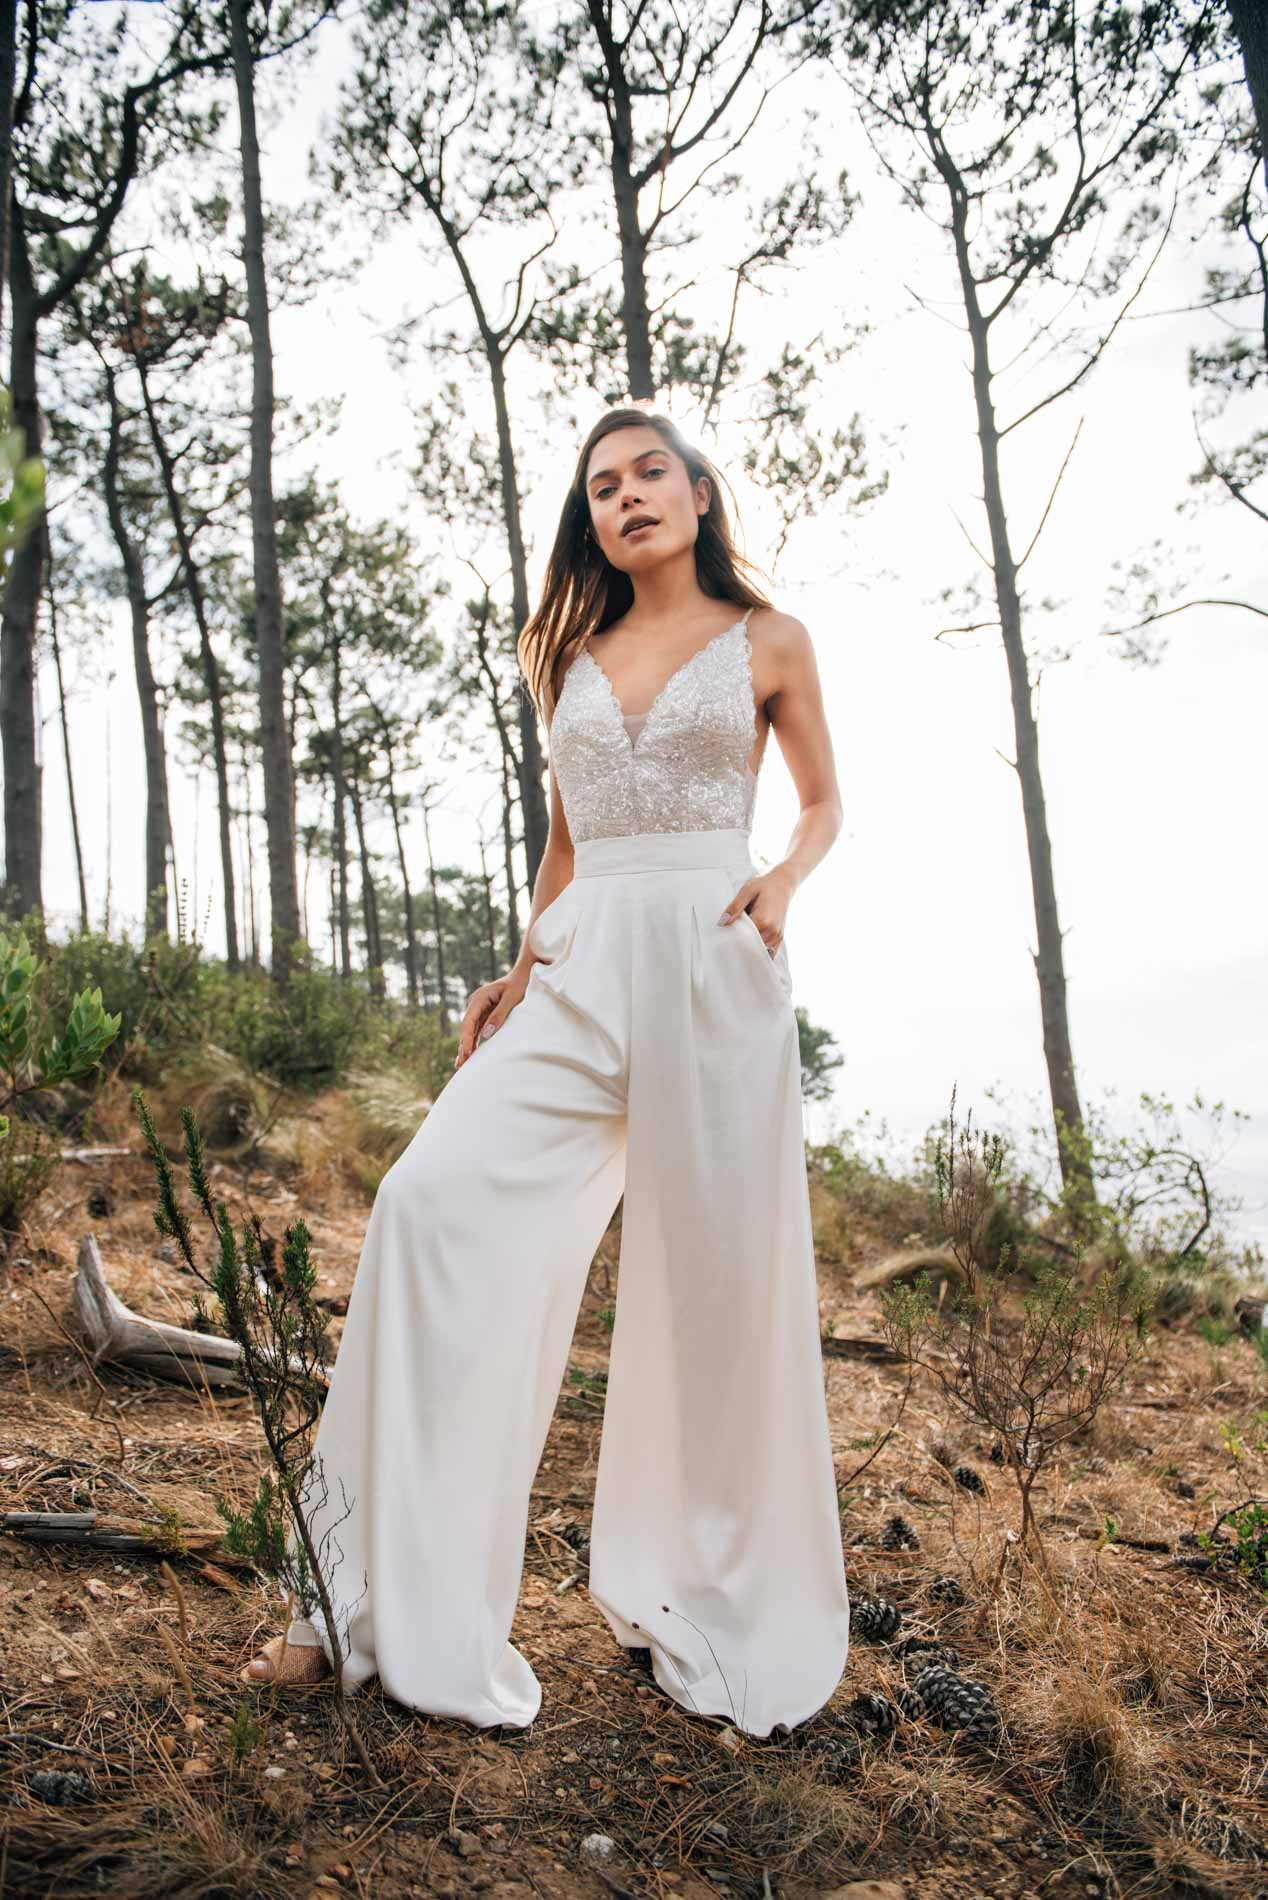 Rumi body and Aurelia Trousers by Catherine Deane at Hannah Elizabeth Bridal, bridal trousers